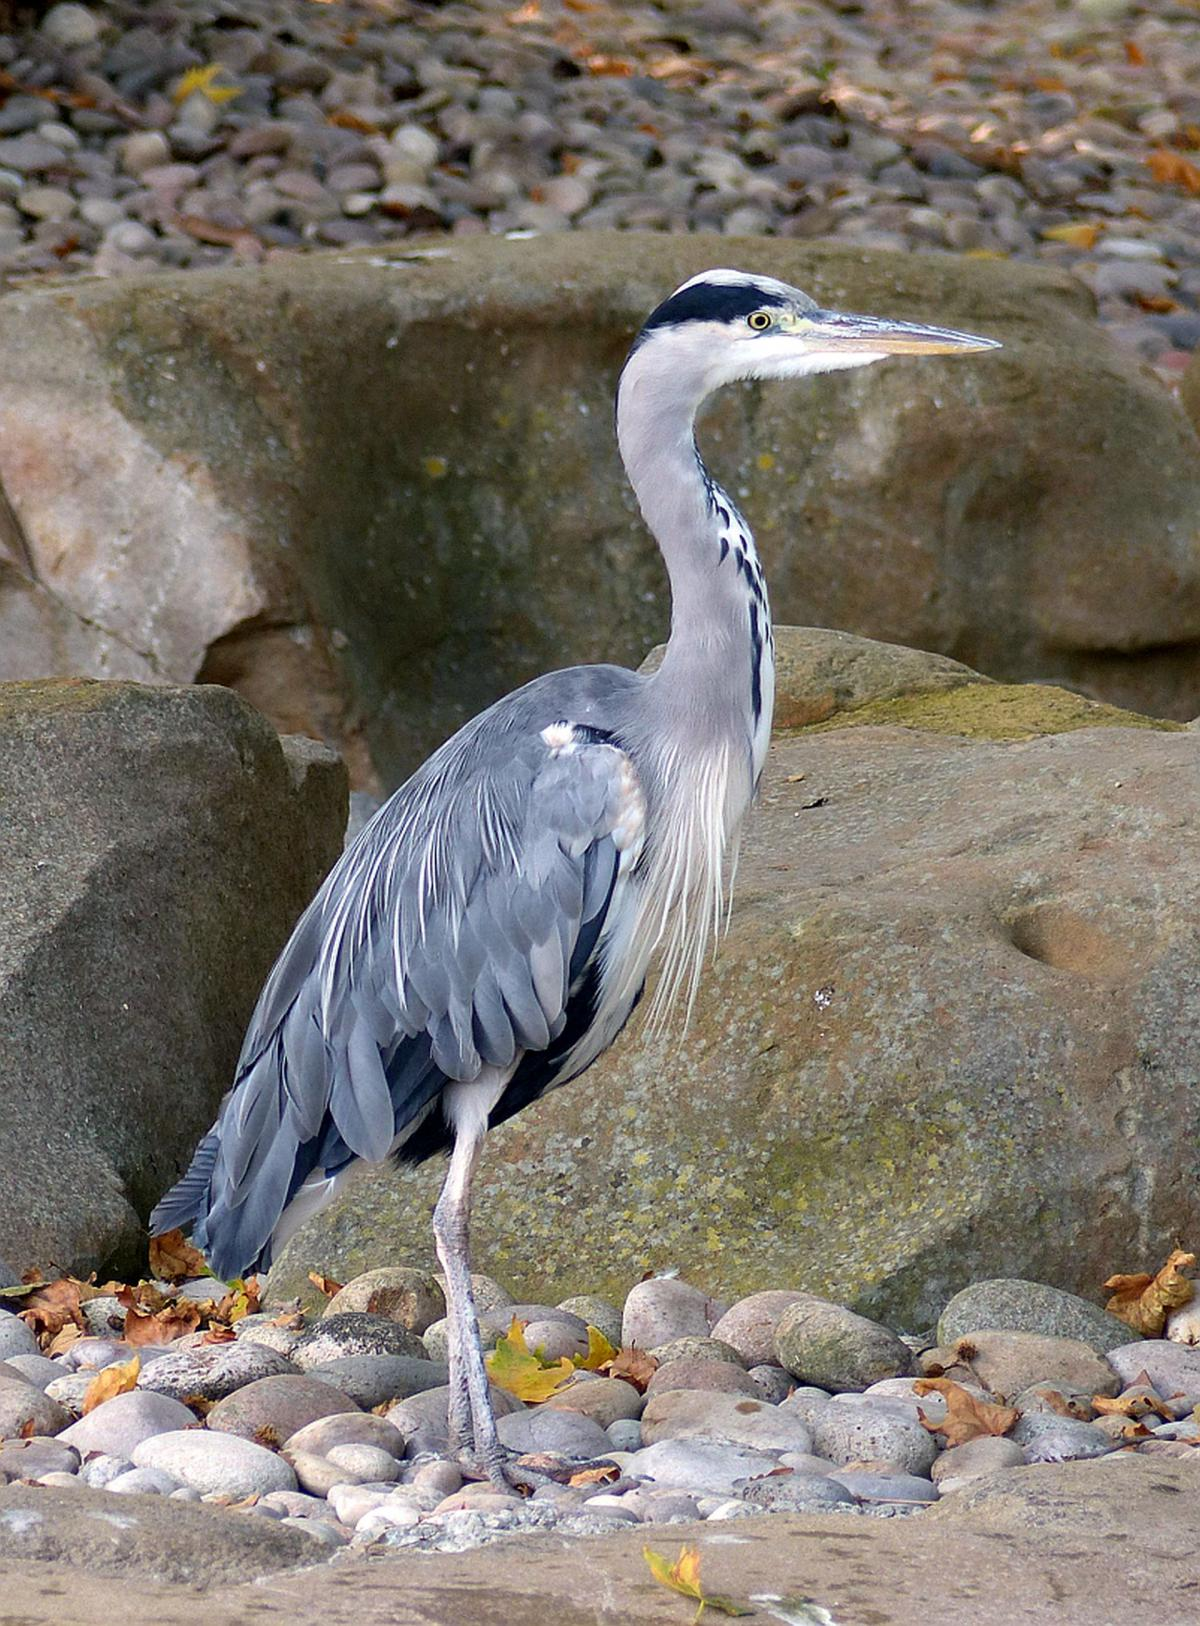 Grey heron   New Zealand Birds Online Image  Grey heron  Adult  London Zoo  August 2017  Image  copy  Alan  Tennyson